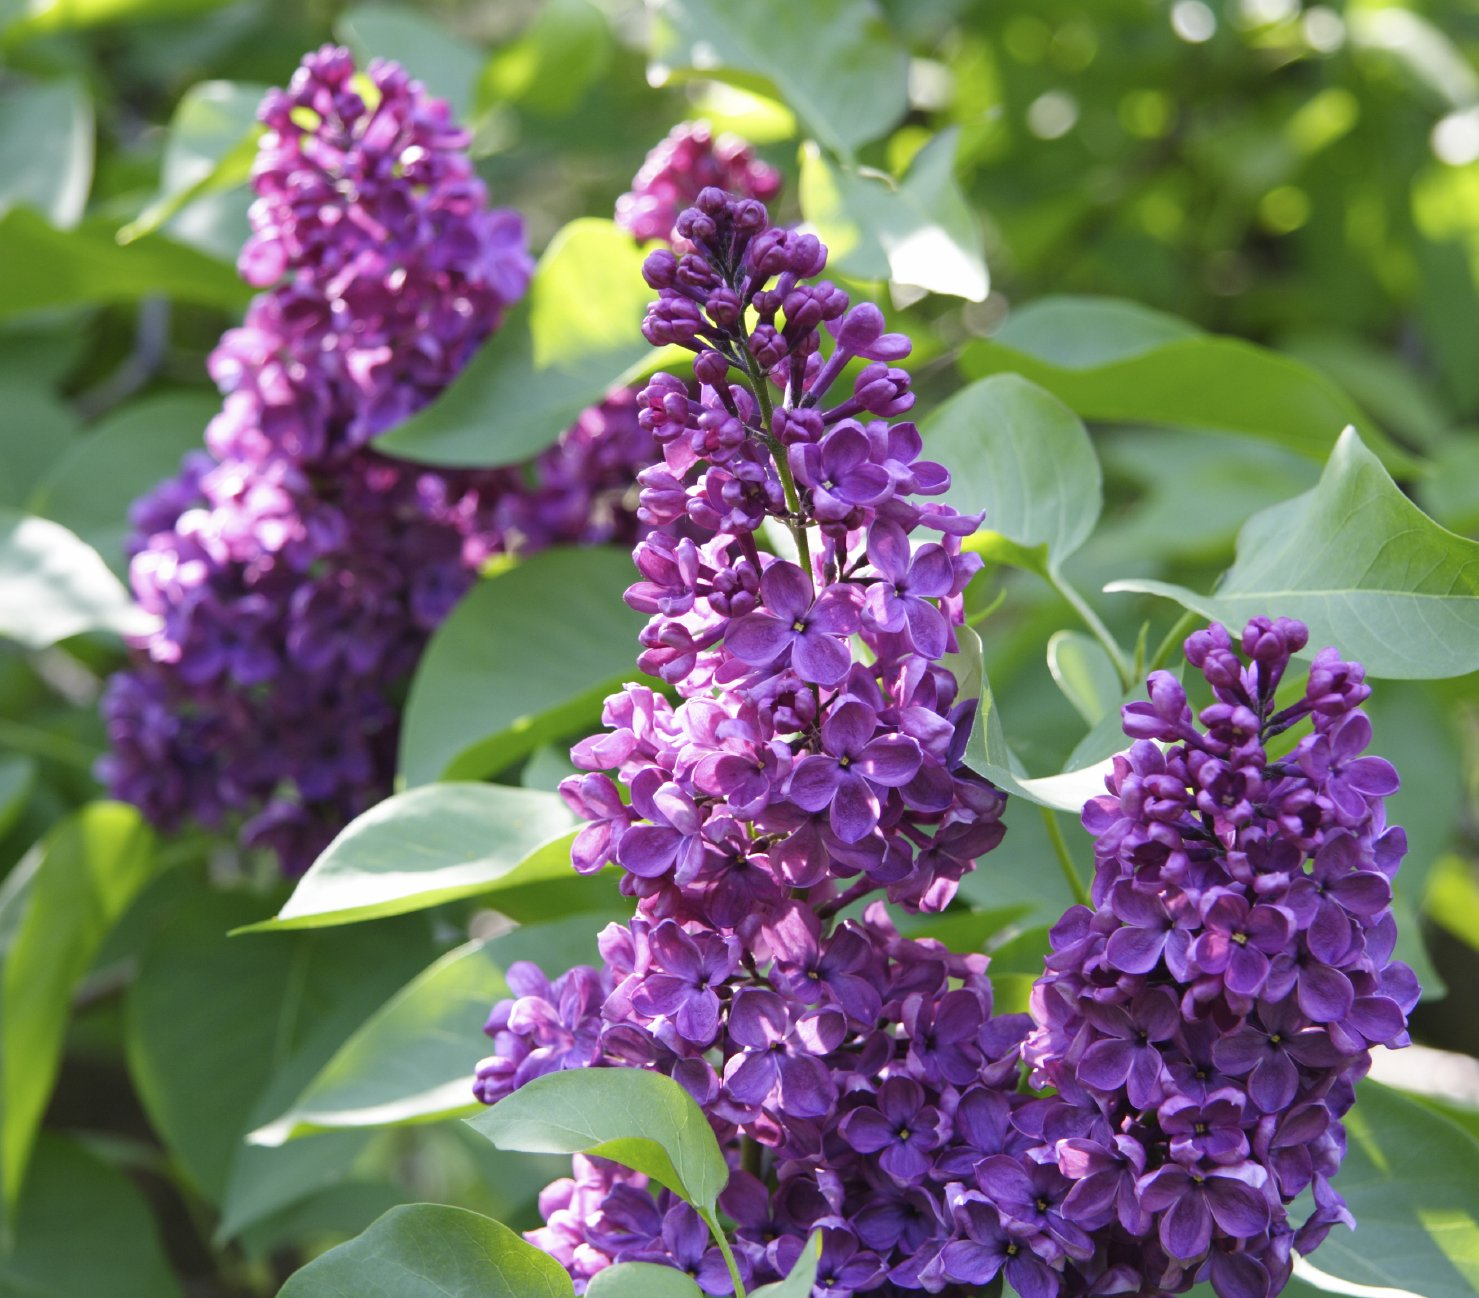 'Charles Joly' Syringa Vulgaris - Branched Lilac Tree 30-40cm Shrub in a 3L Pot. 3fatpigs beechwoodtrees 3fatpigs®